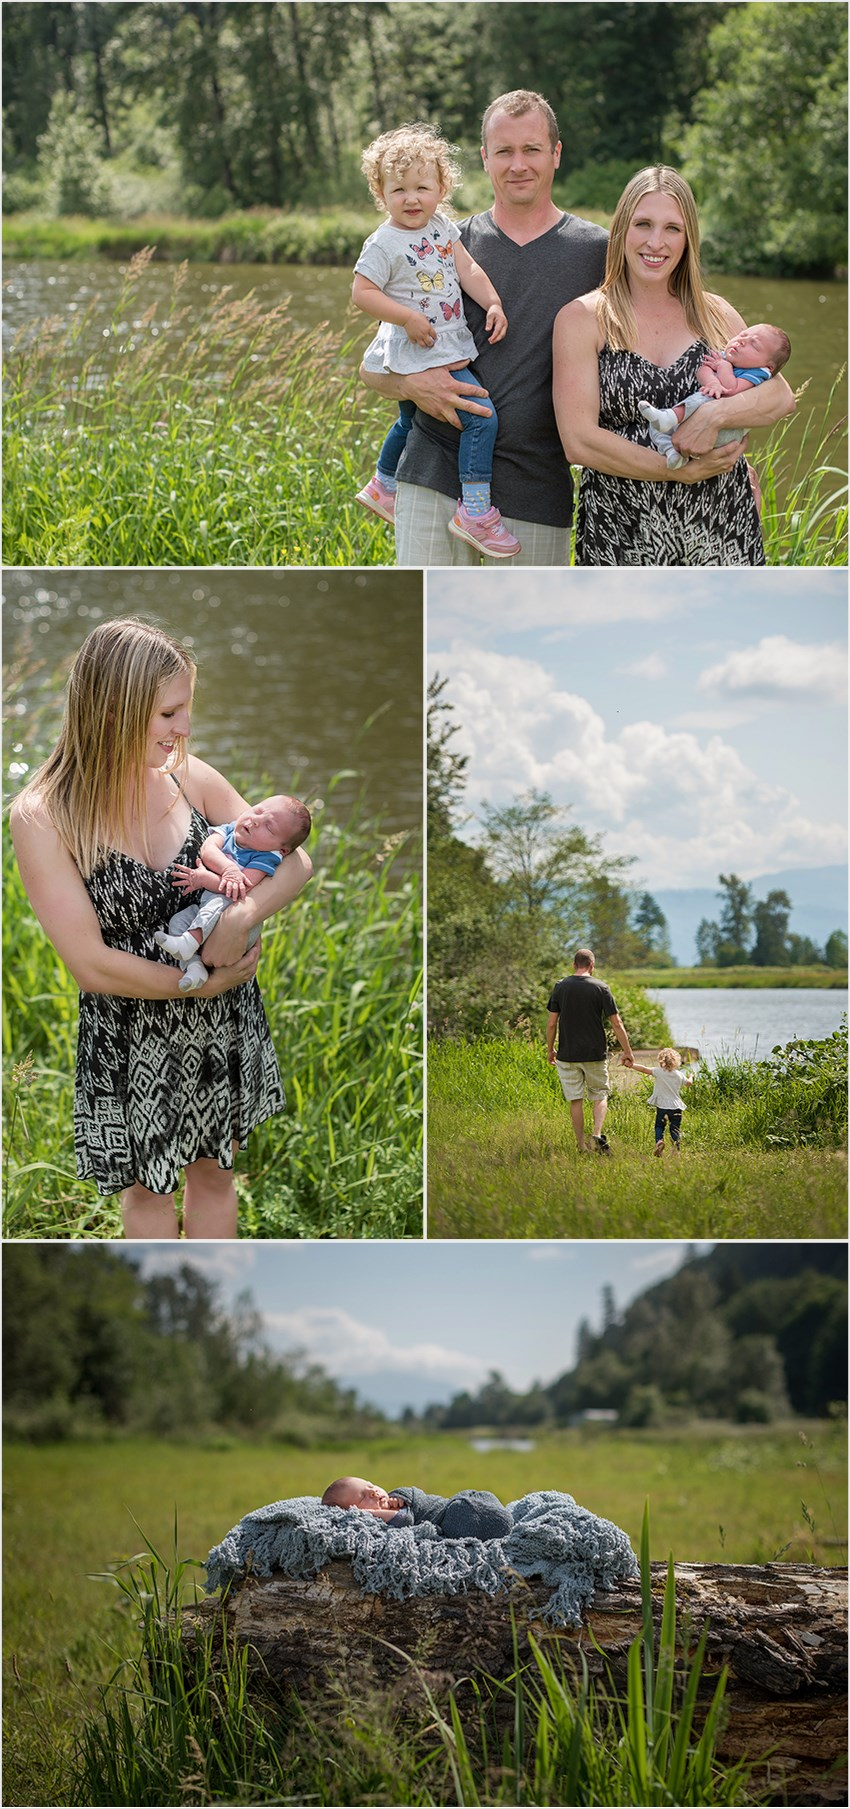 Baby Derrick Abbotsford Outdoor Newborn Photographer 002 (Side 2)